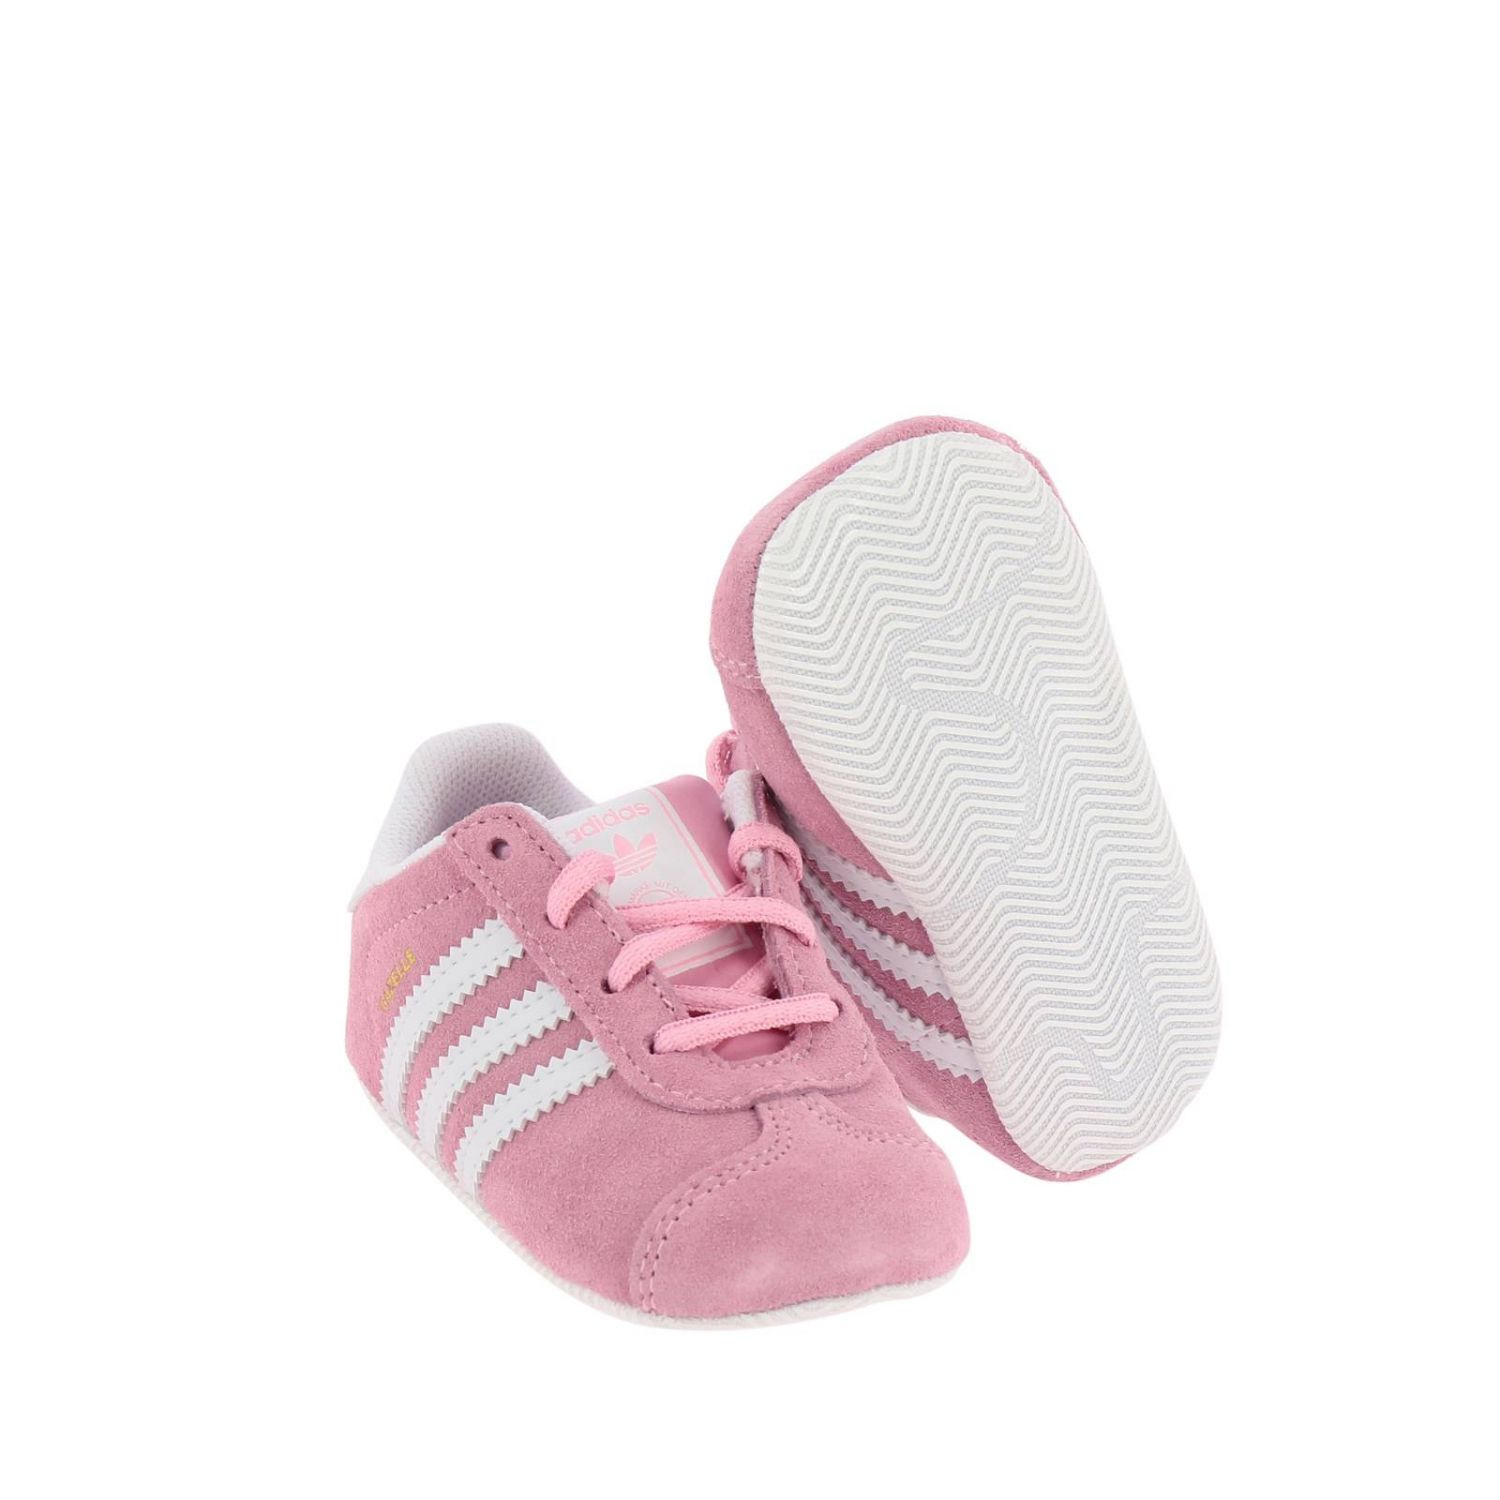 Shoes Adidas Originals: Shoes kids Adidas Originals pink 2